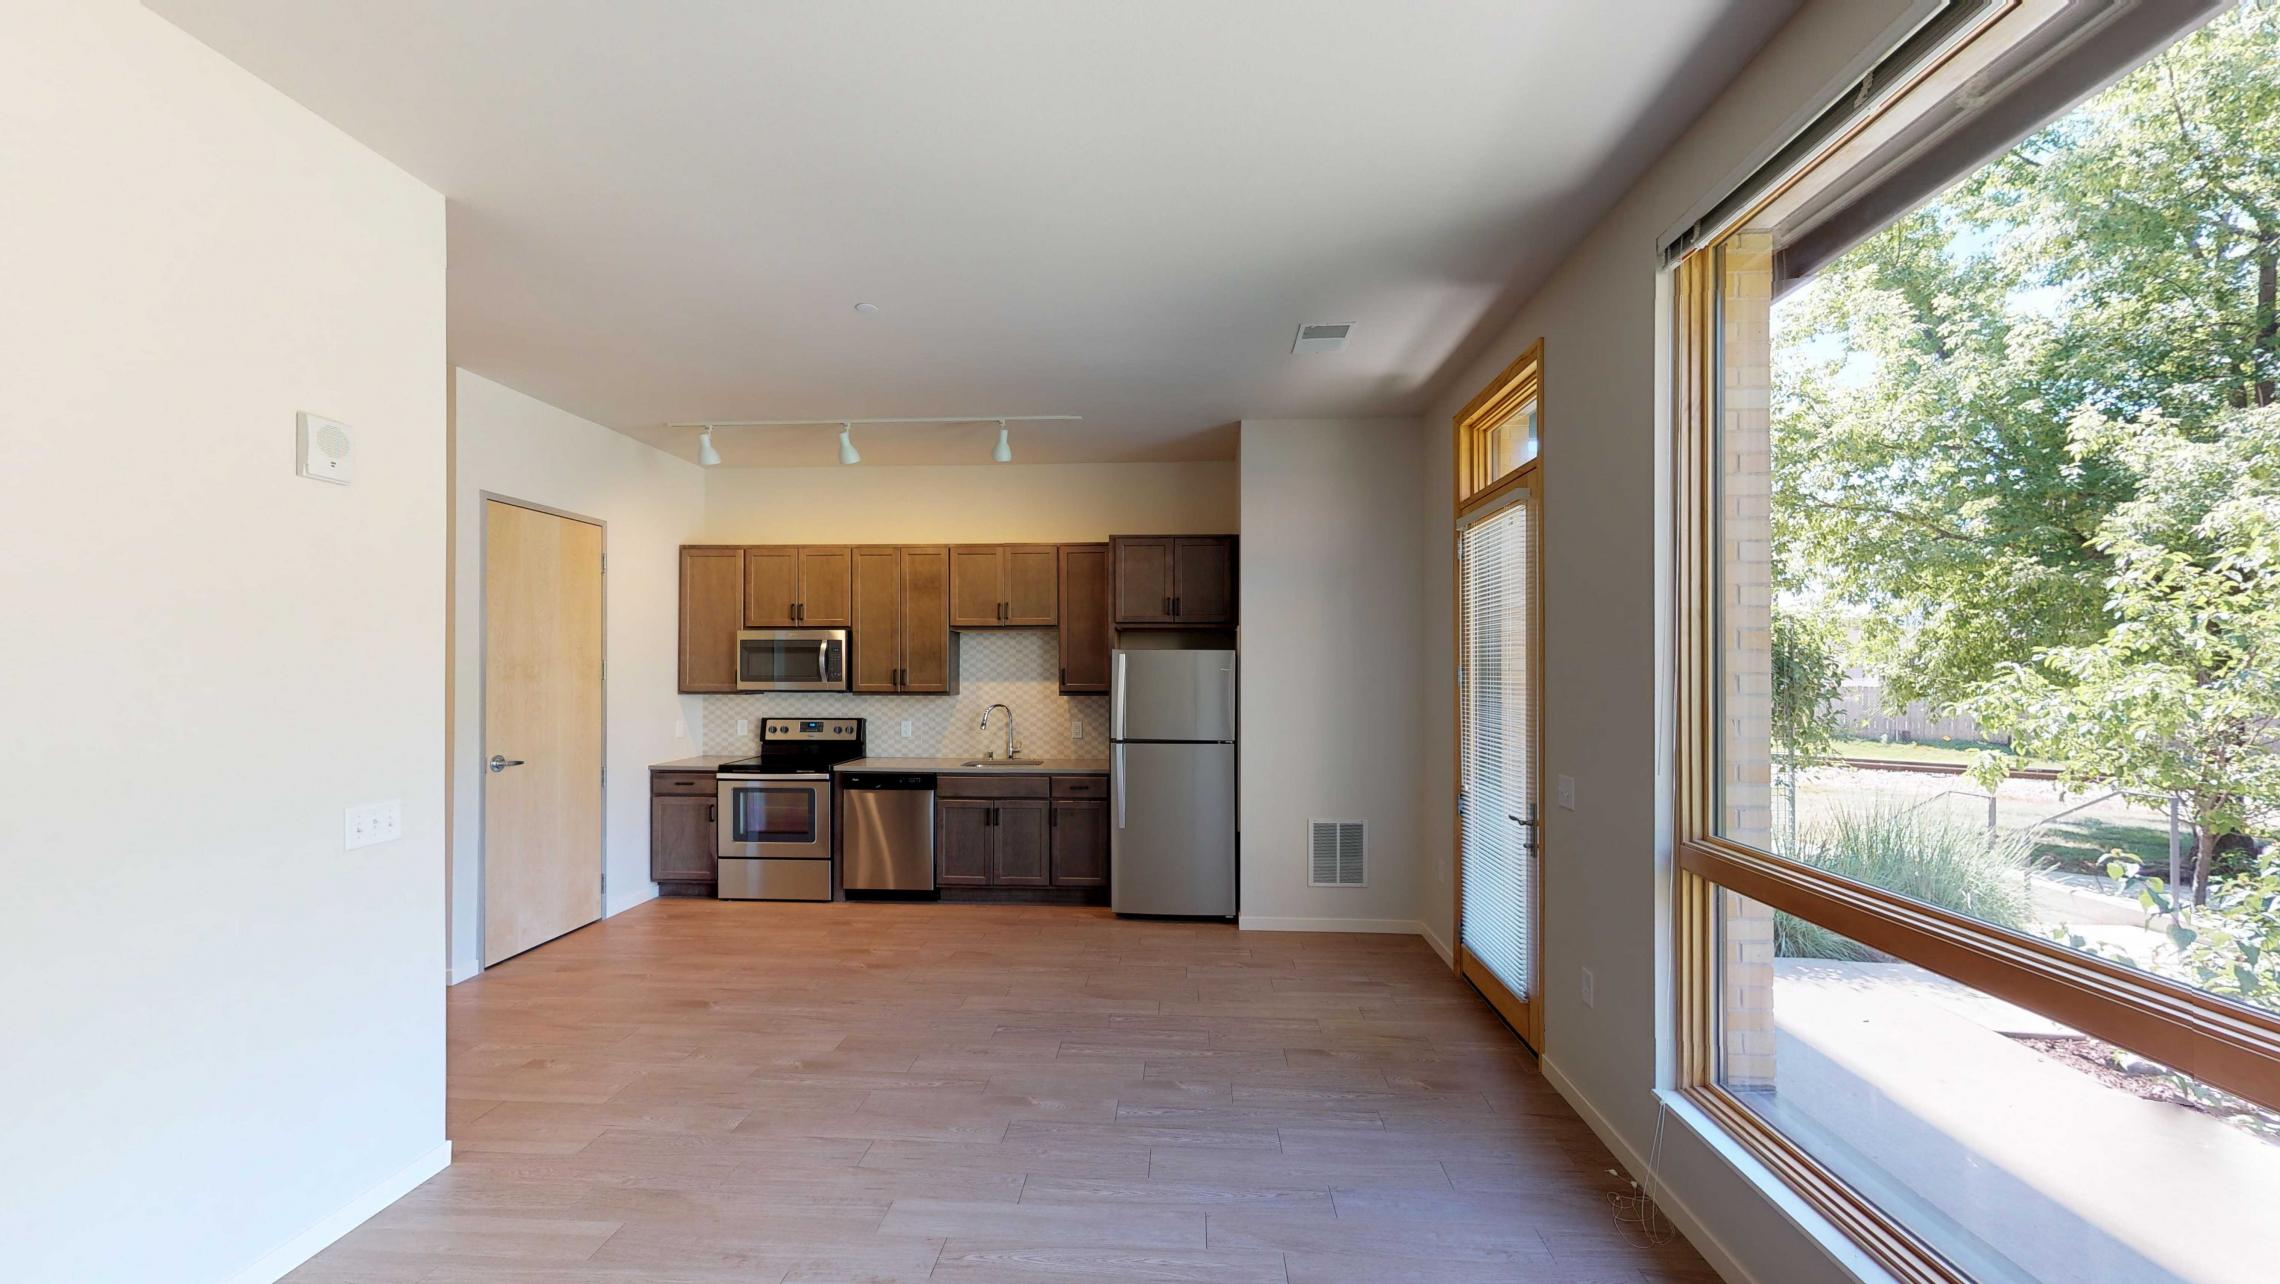 Quarter-Row-Yards-Apartment-104-One-Bedroom-Patio-Modern-Upscale-Fitness-Lounge-Courtyard-Downtown-Madison-View-Bike-Trail-Lifestyle-Lake-Monona